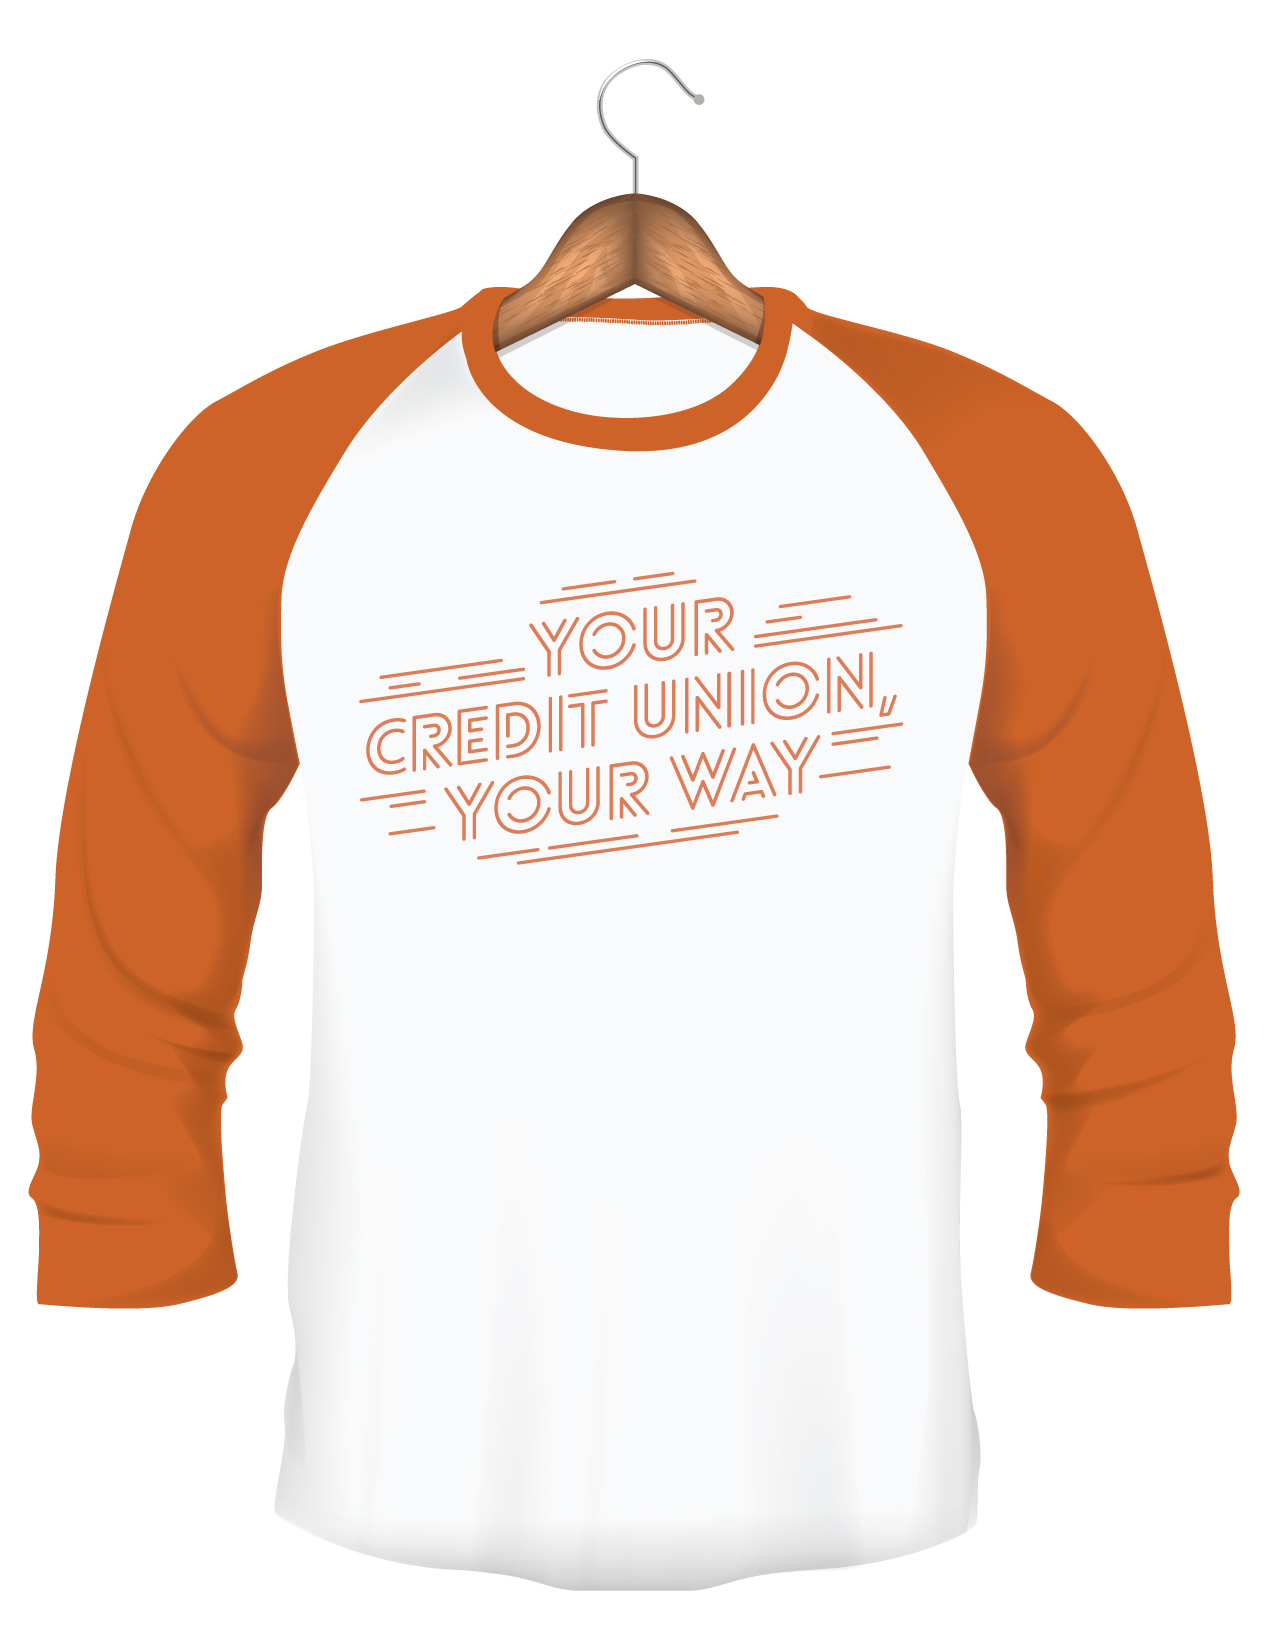 """Your Credit Union, Your Way"" t-shirt"